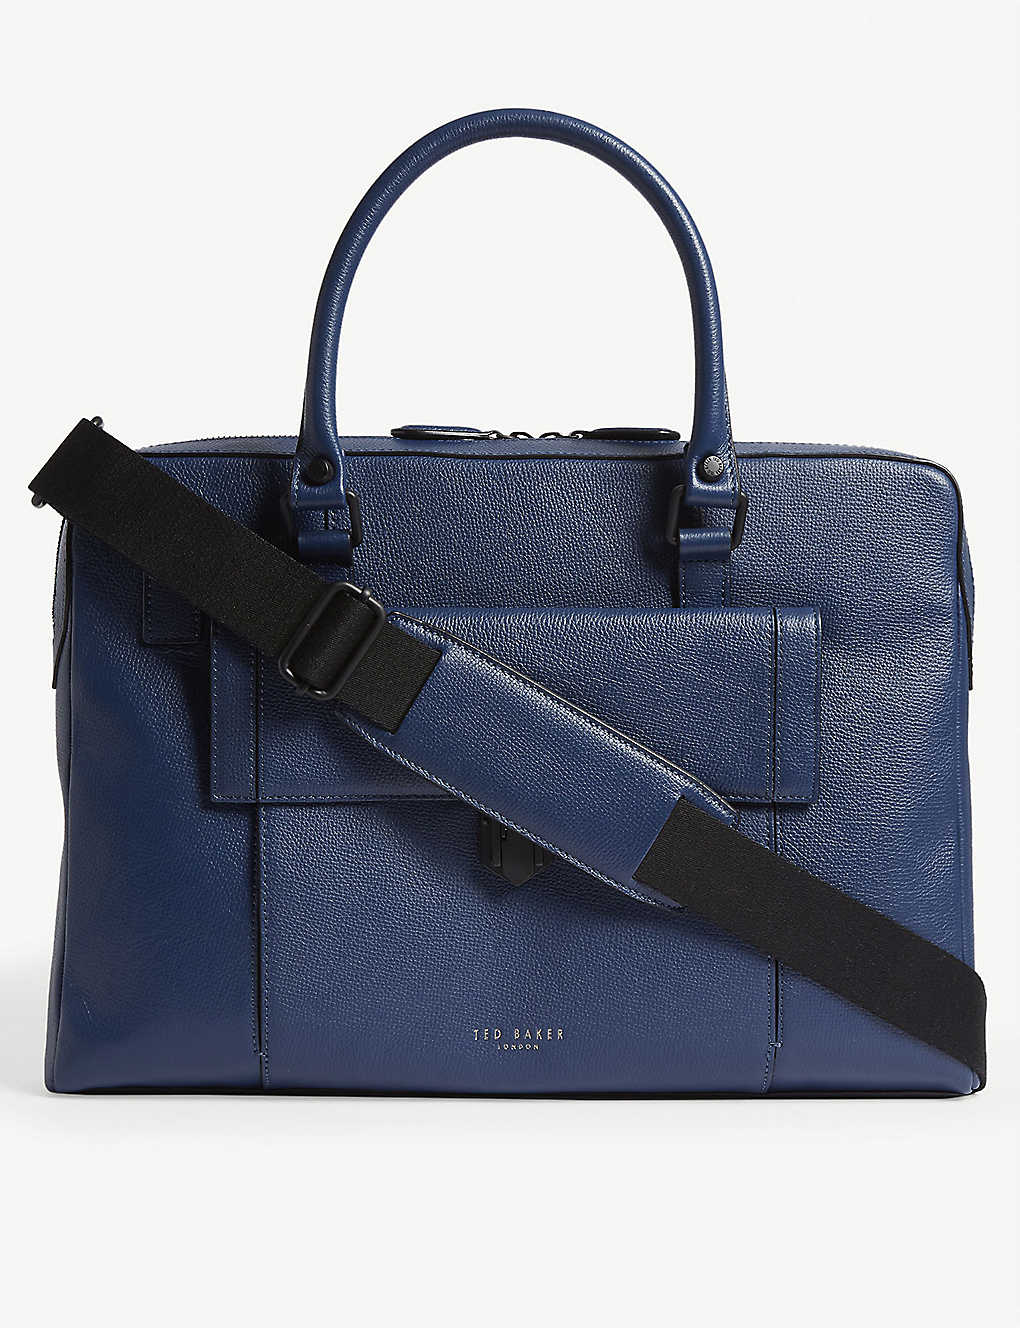 8c179ae5b5 TED BAKER - Leather document bag | Selfridges.com